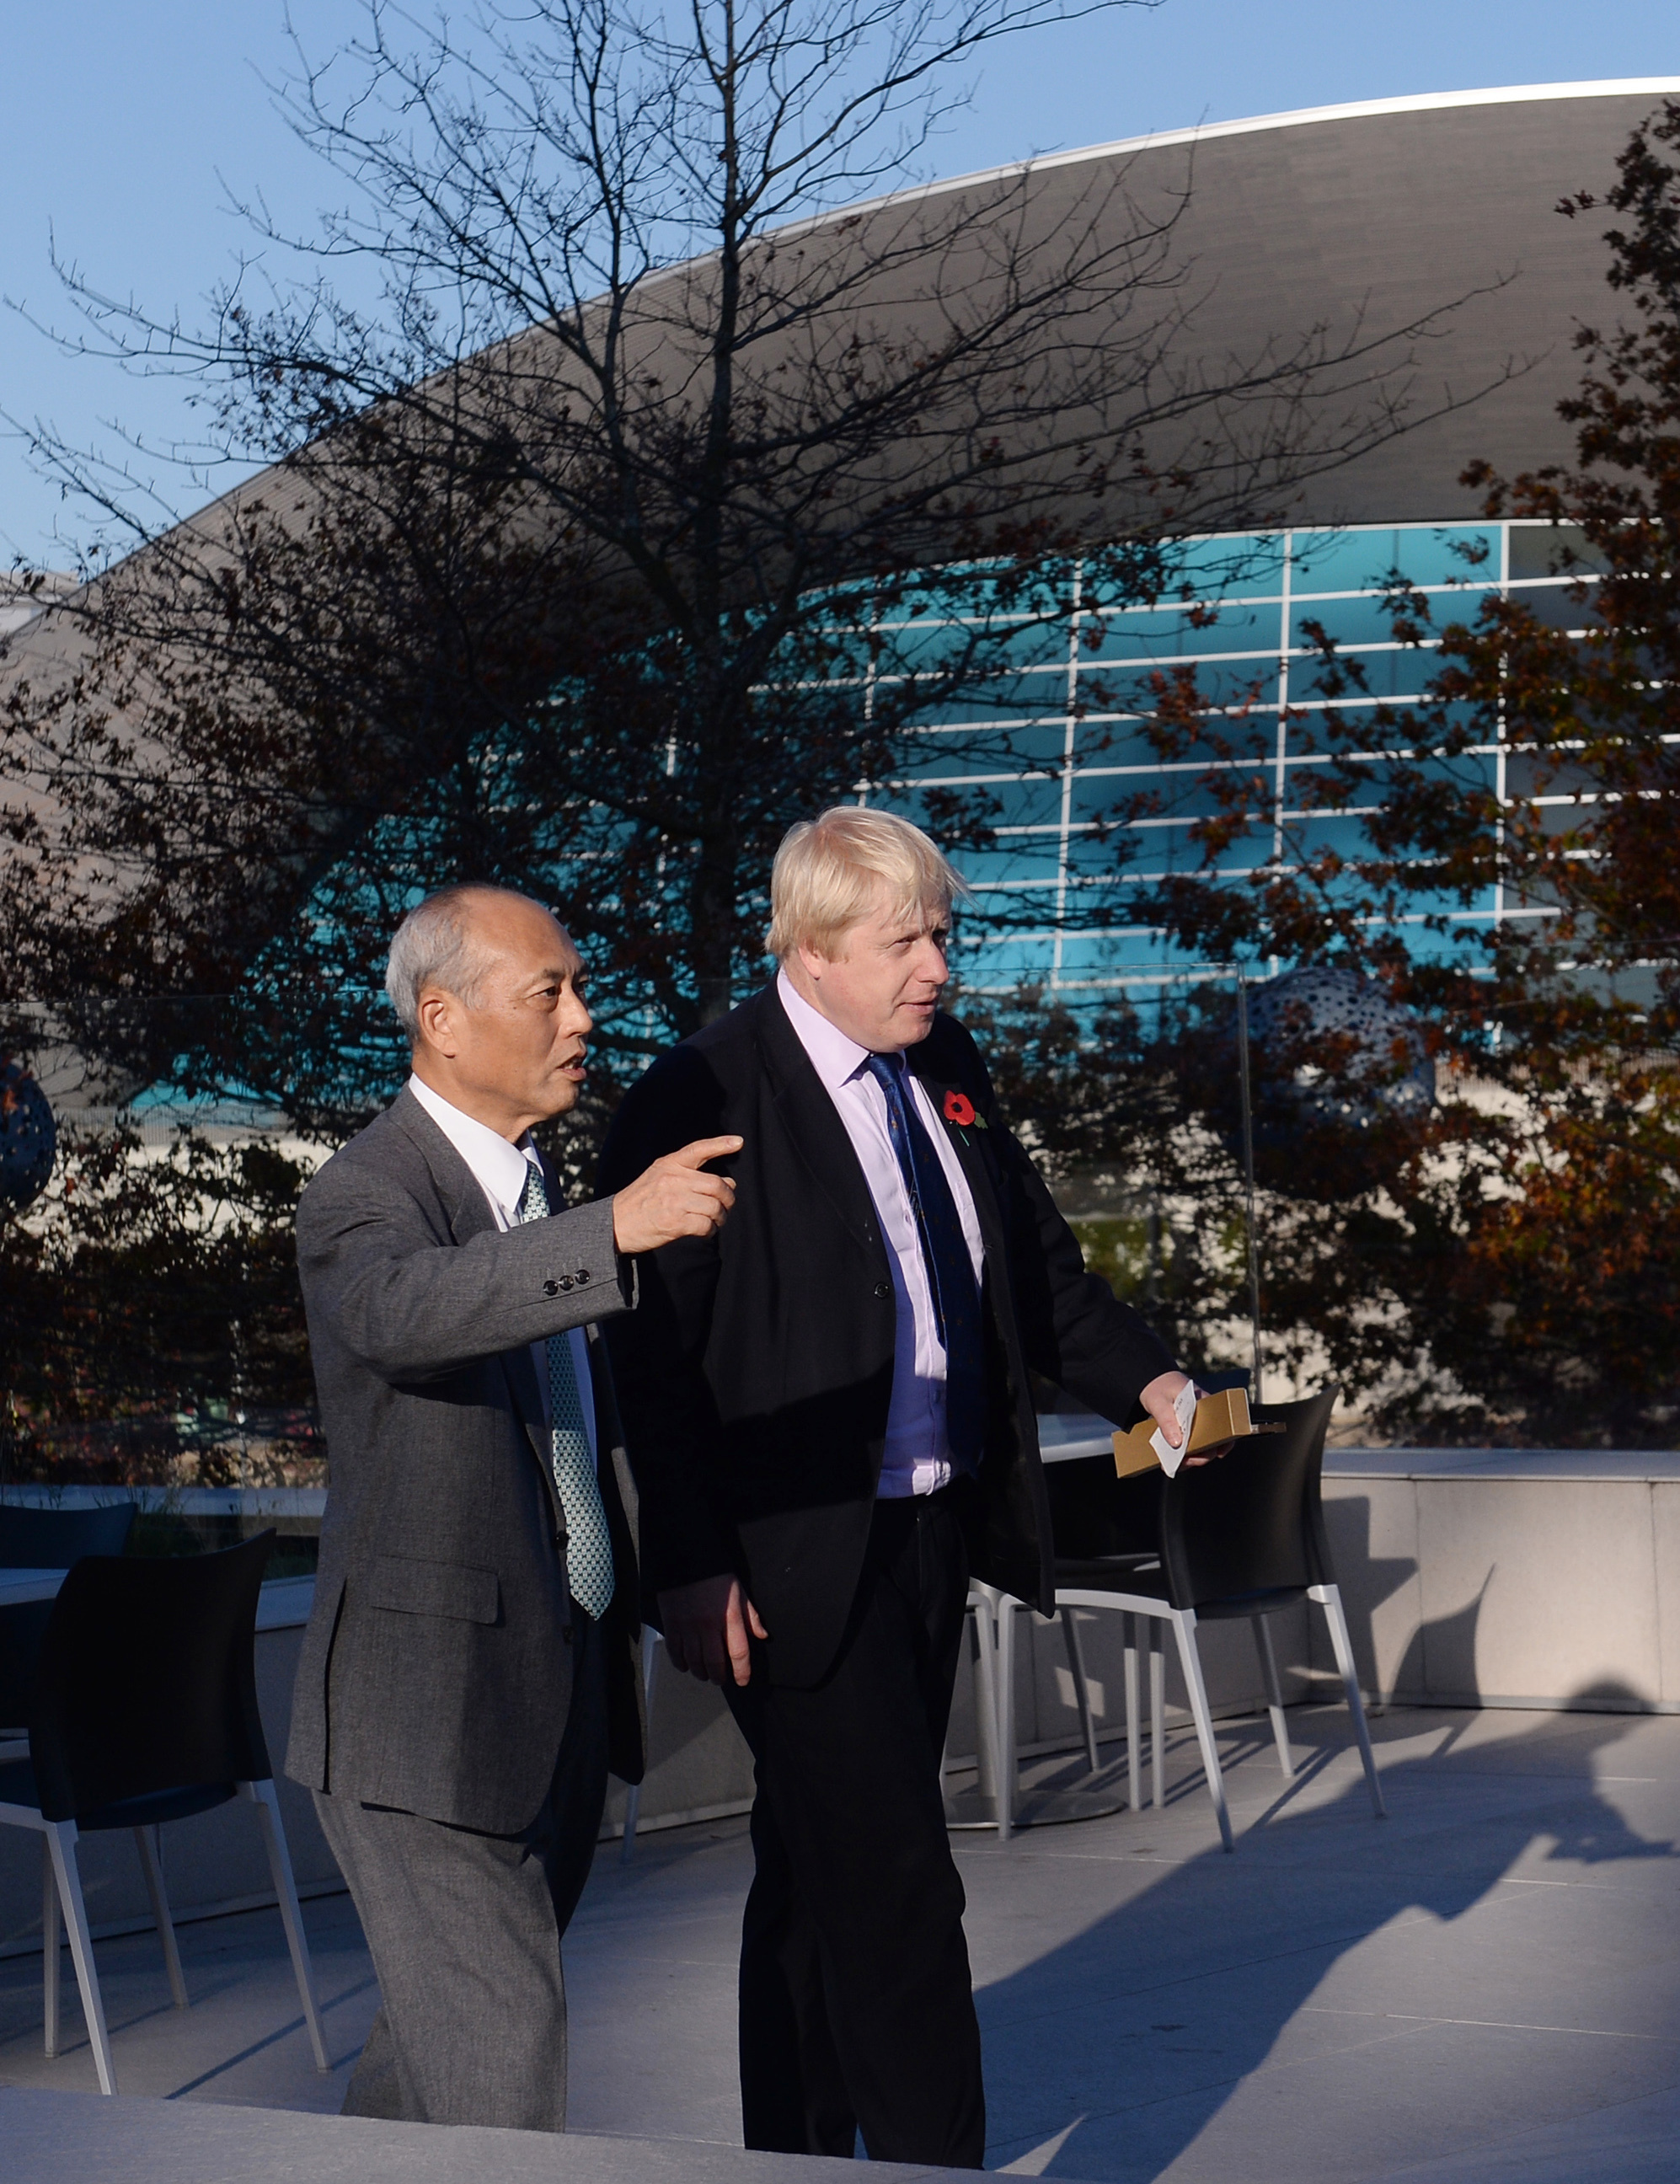 Mayor of London Boris Johnson welcomes the Governor of Tokyo Mr Yoichi Masuzoe to the Olympic Park in London, where he showed him the various London 2012 Olympic venues ahead of Tokyo hosting the 2020 Games.